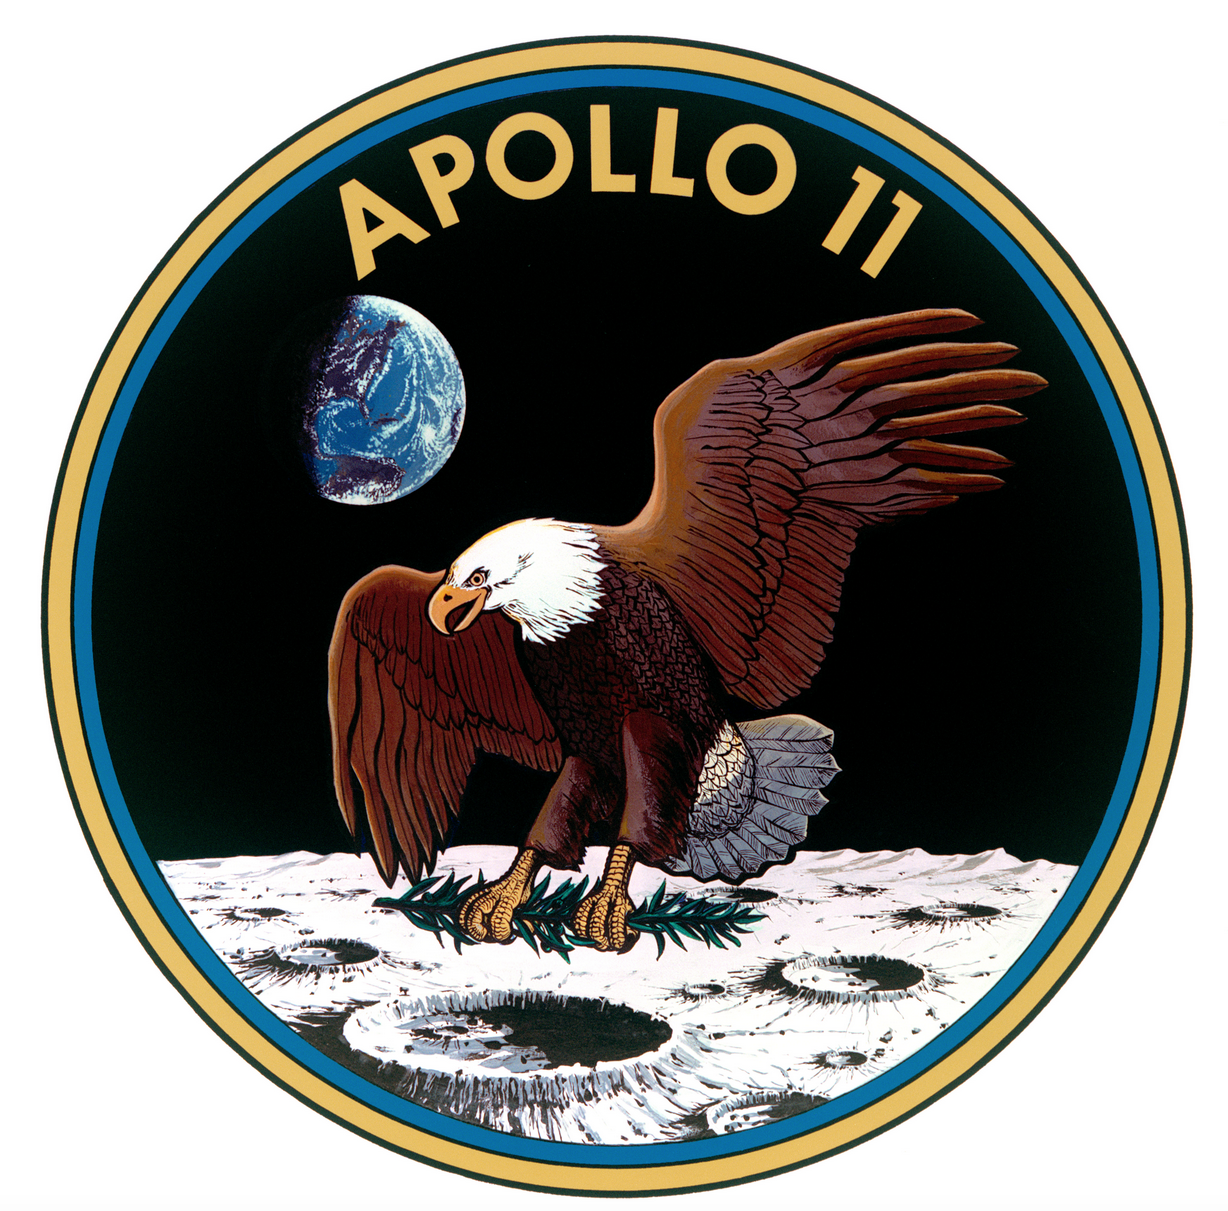 The official emblem of Apollo 11.